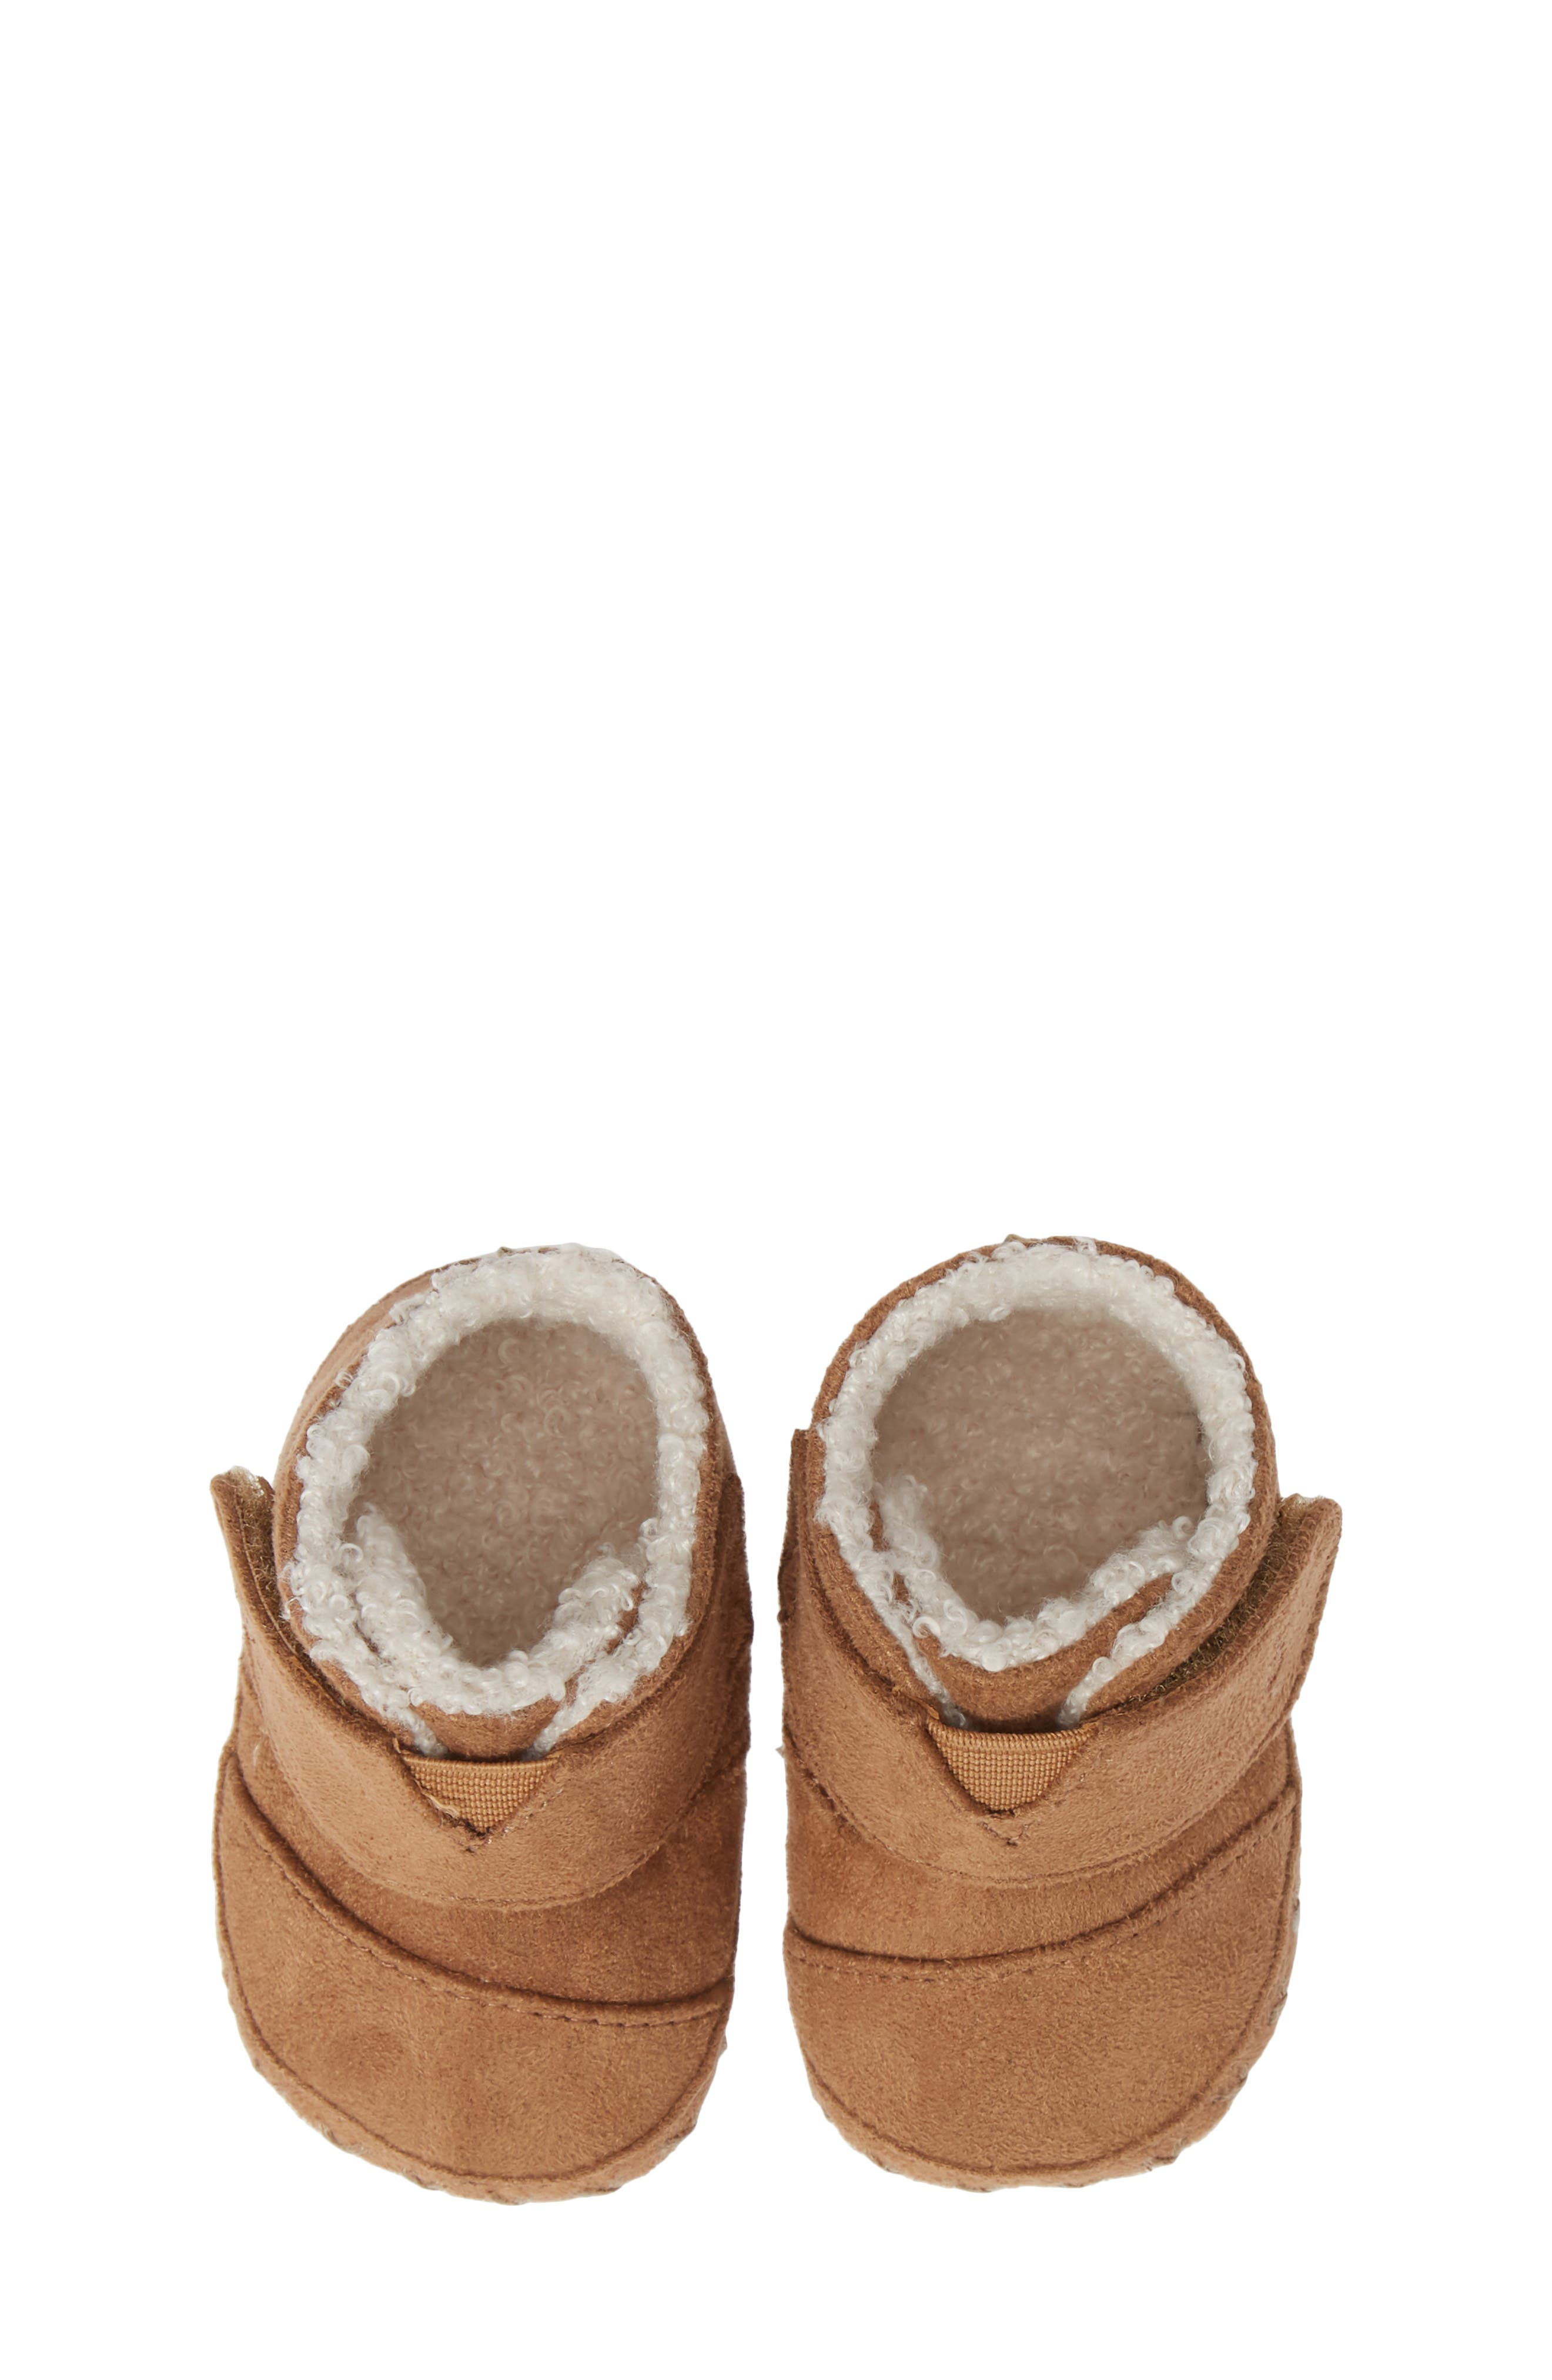 Tiny Cuna Faux Fur Crib Bootie,                             Main thumbnail 1, color,                             TOFFEE MICROFIBER